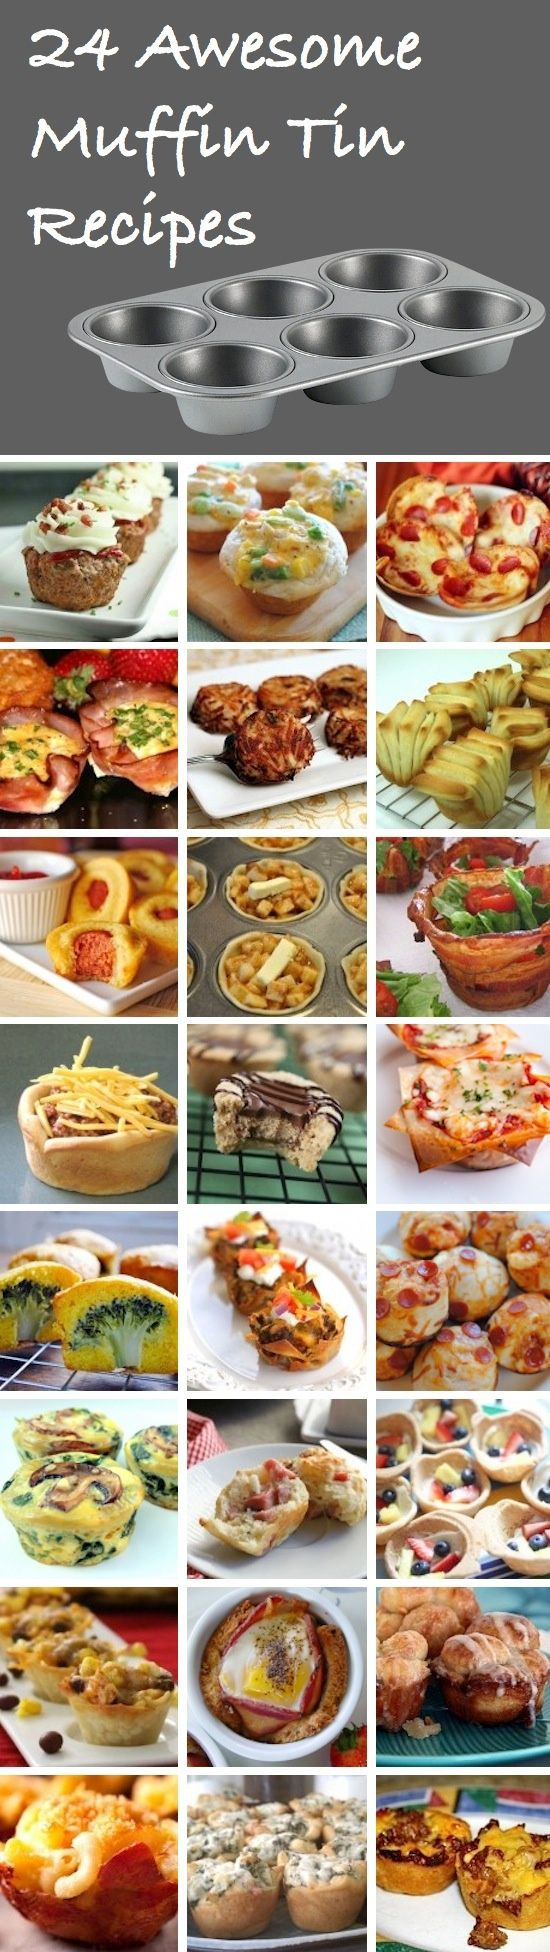 #muffin tin recipes